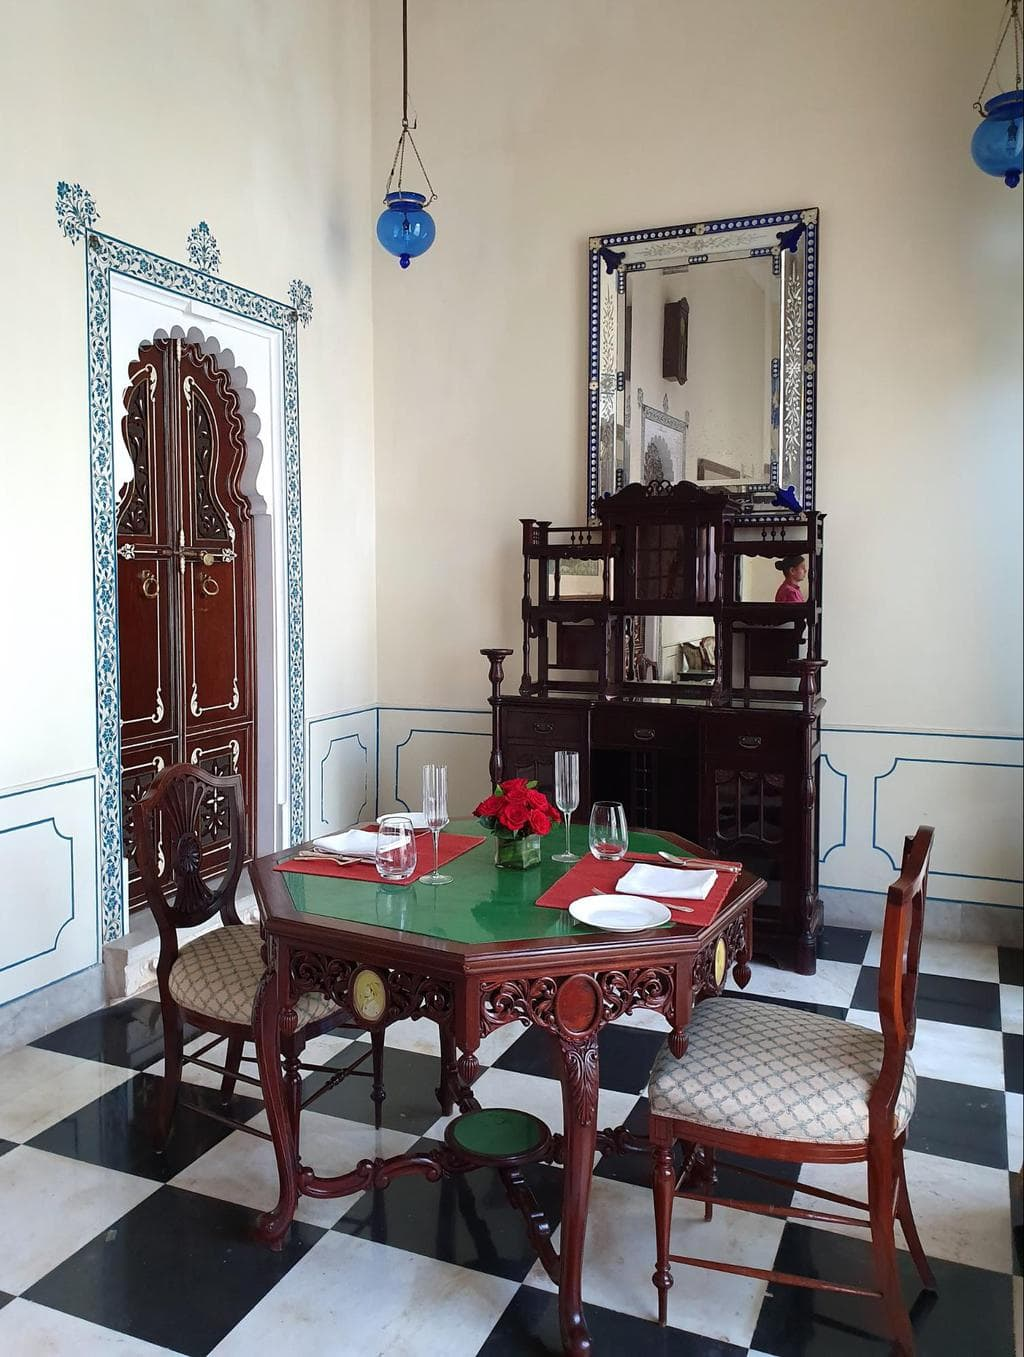 The vestibule of the Imperial Suite at Shiv Niwas Palace 02